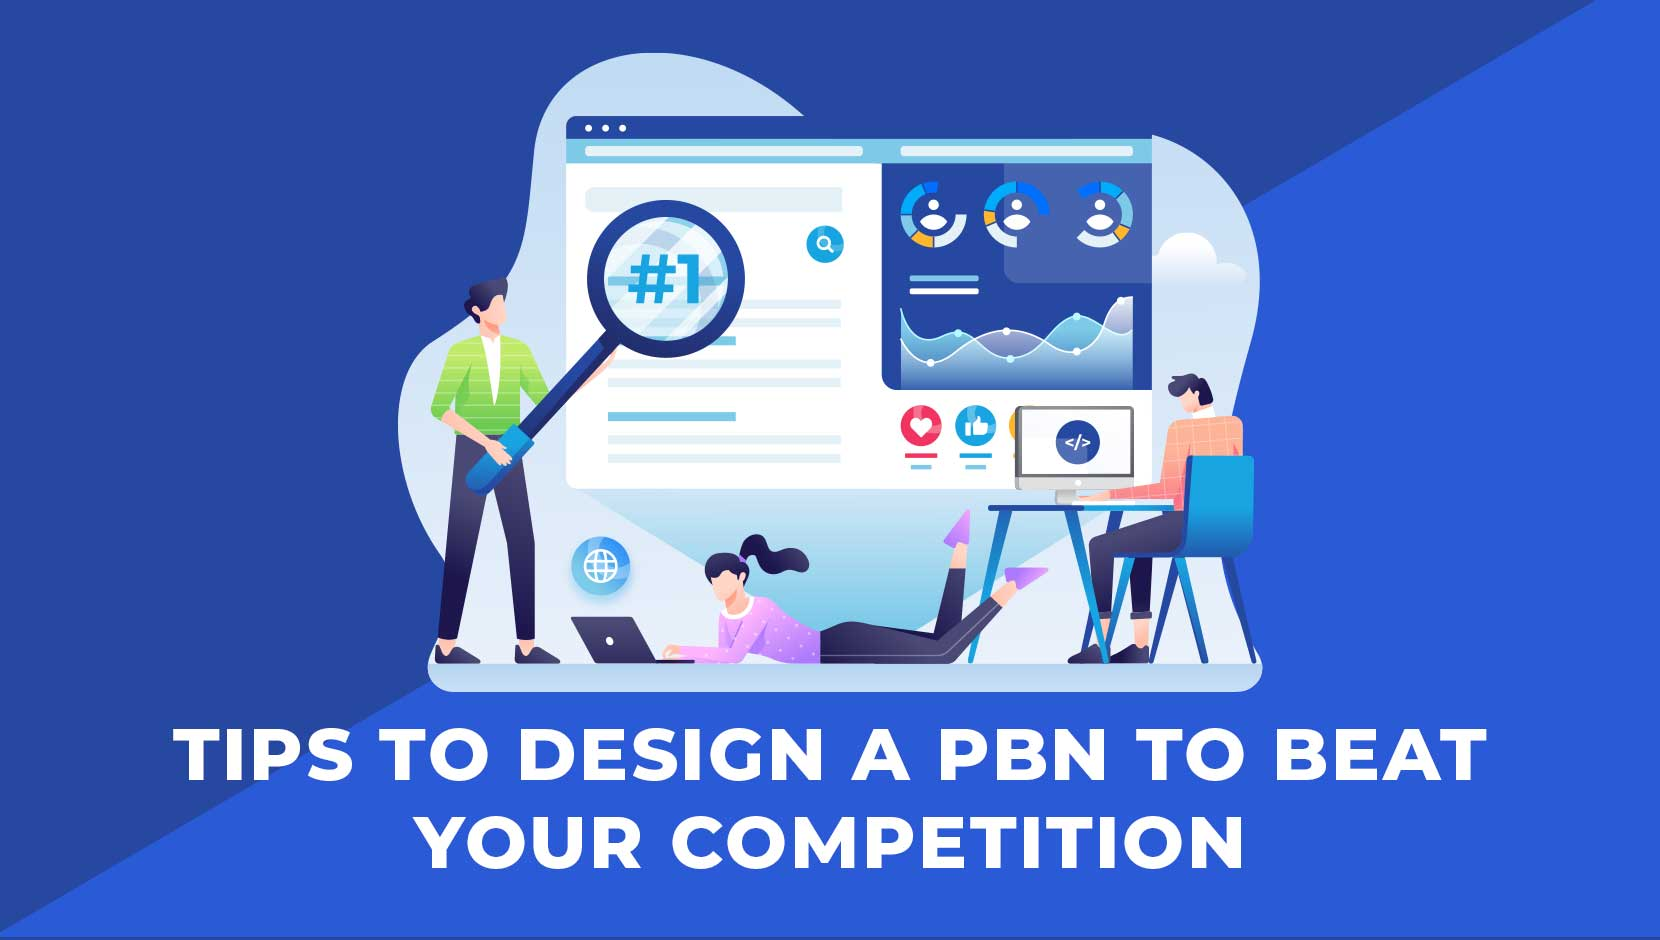 5 Tips to Design a PBN to Beat Your Competition